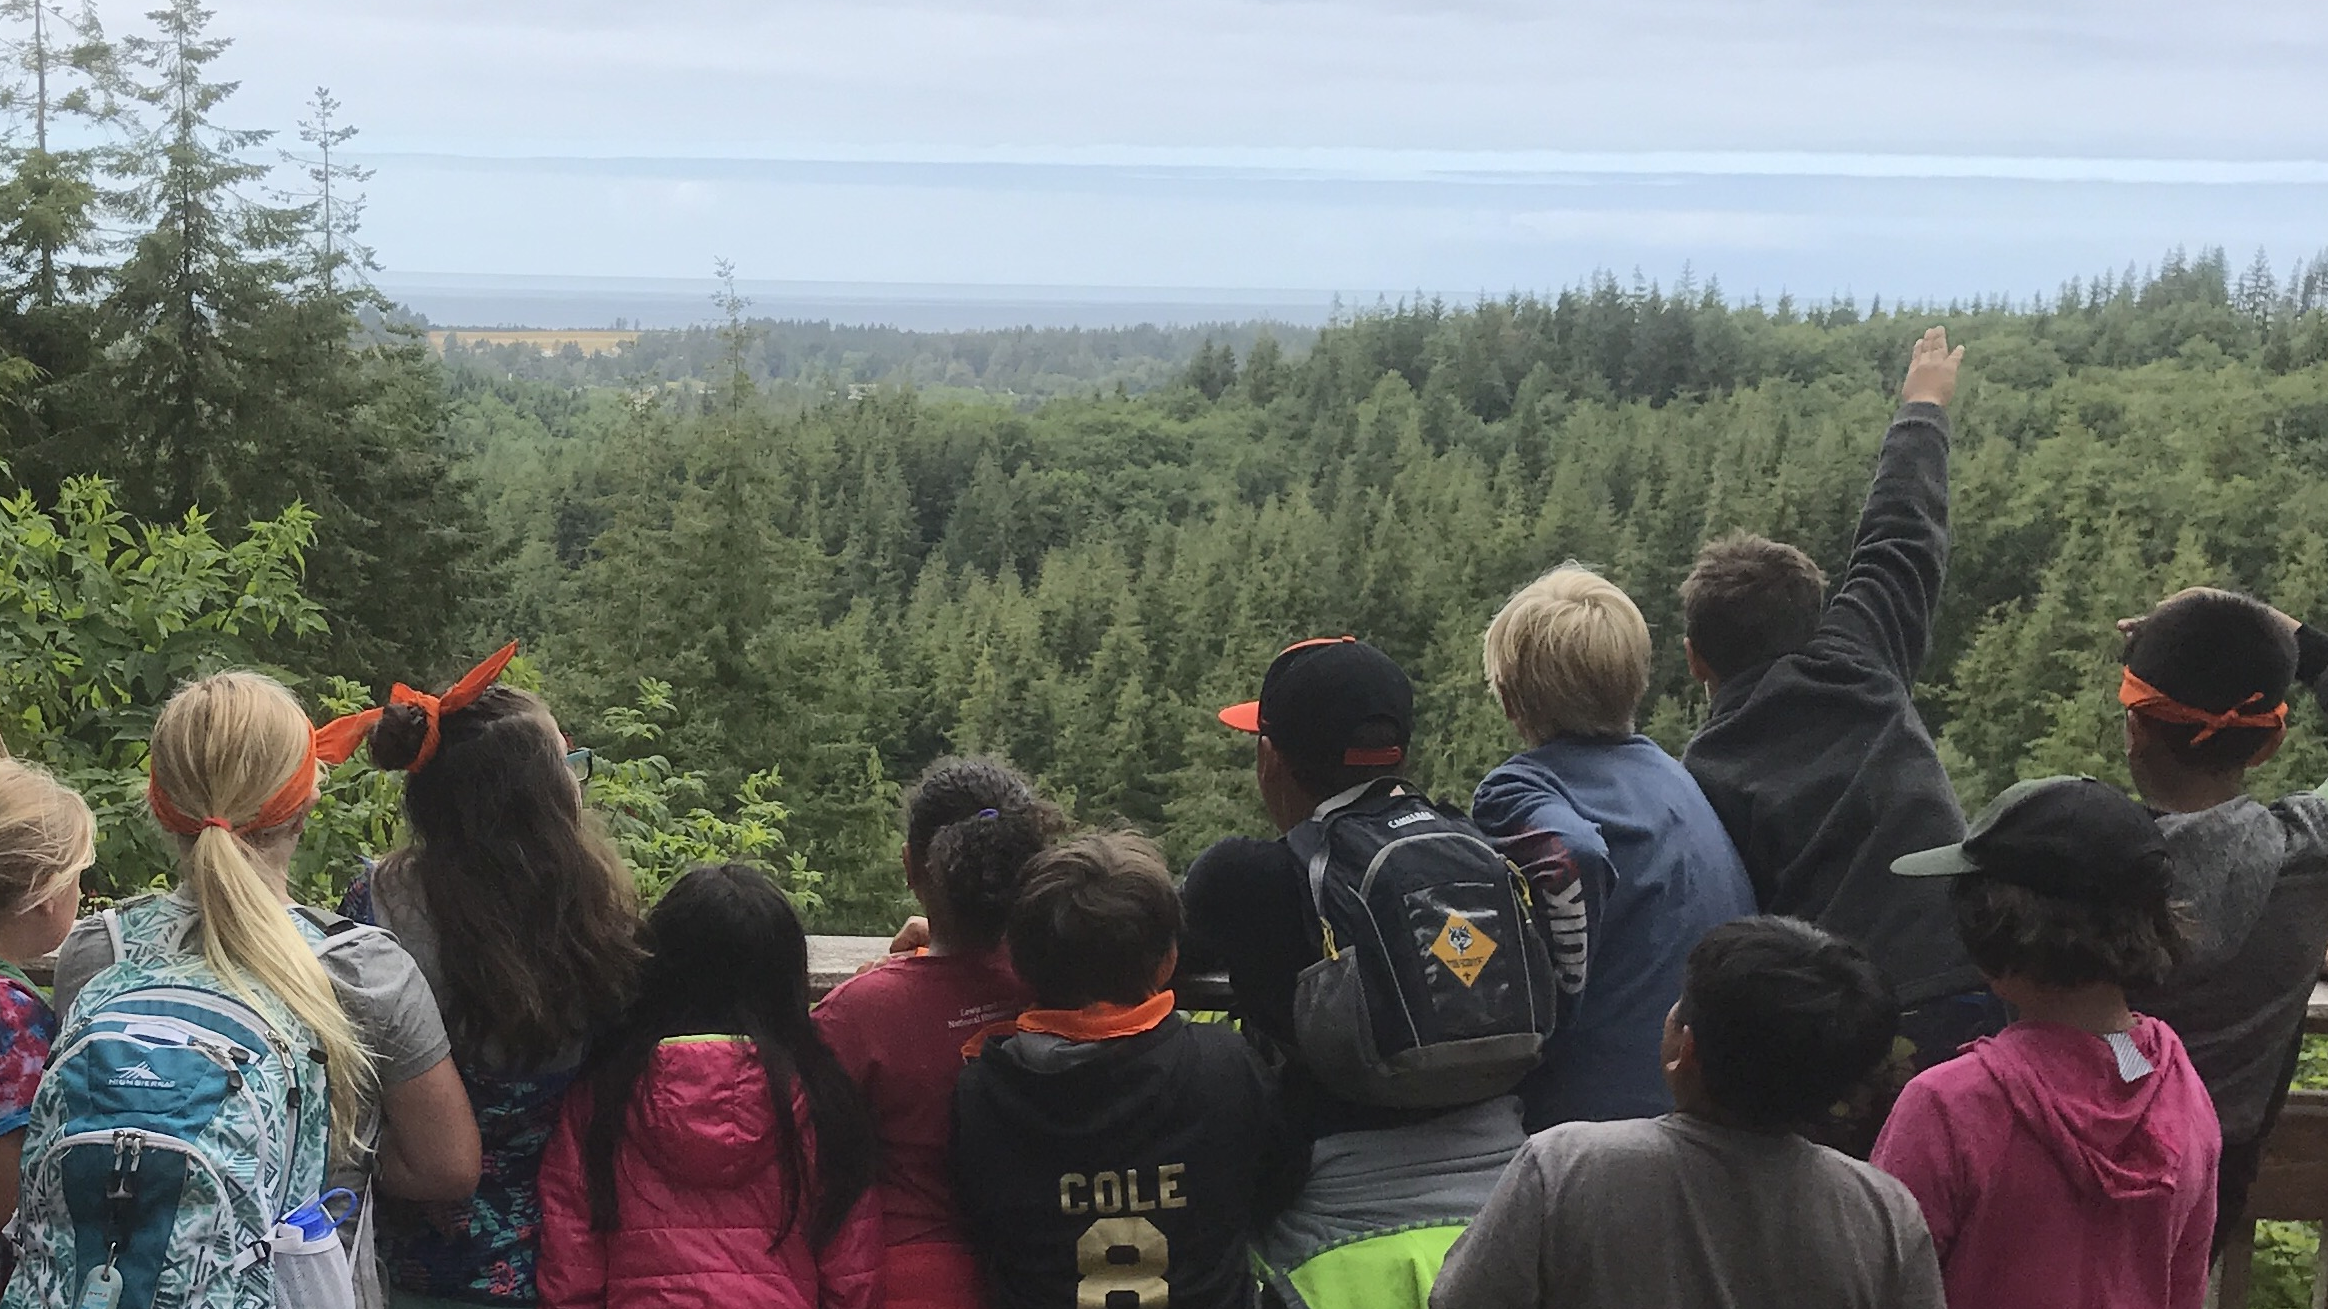 Nature Adventure Campers viewing the ocean from the overlook